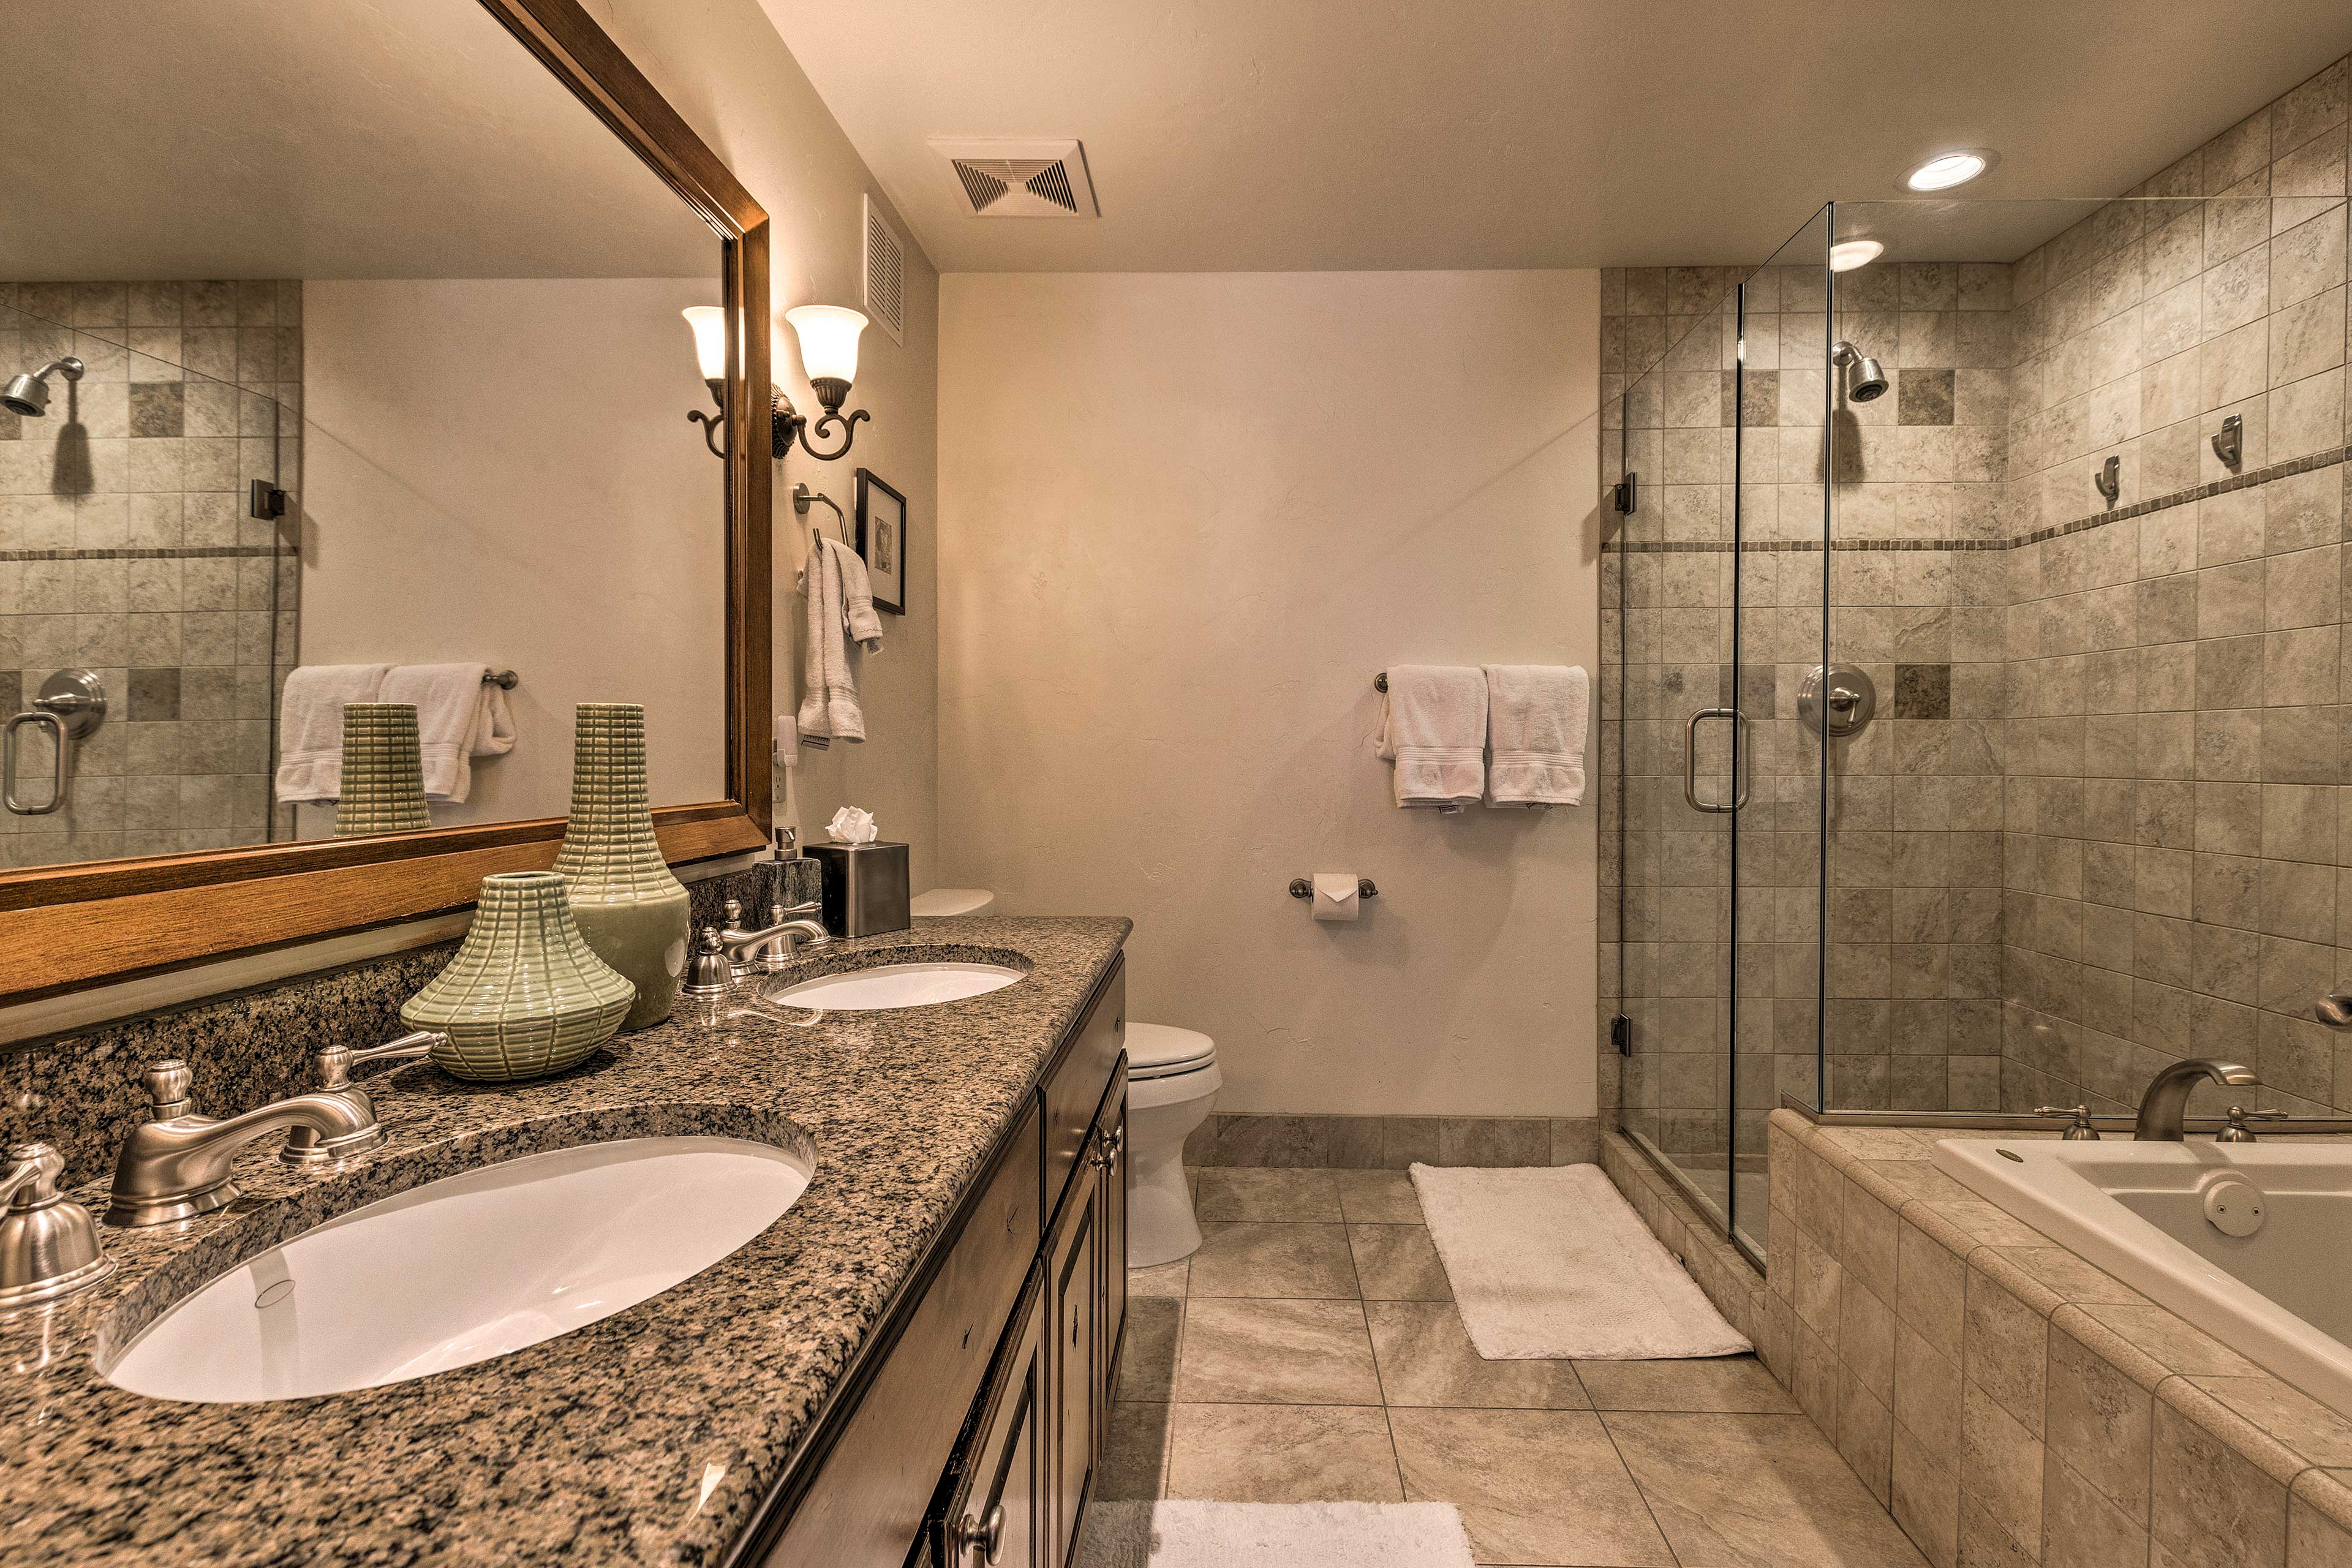 His-and-her sinks provide ample counter space for couples.